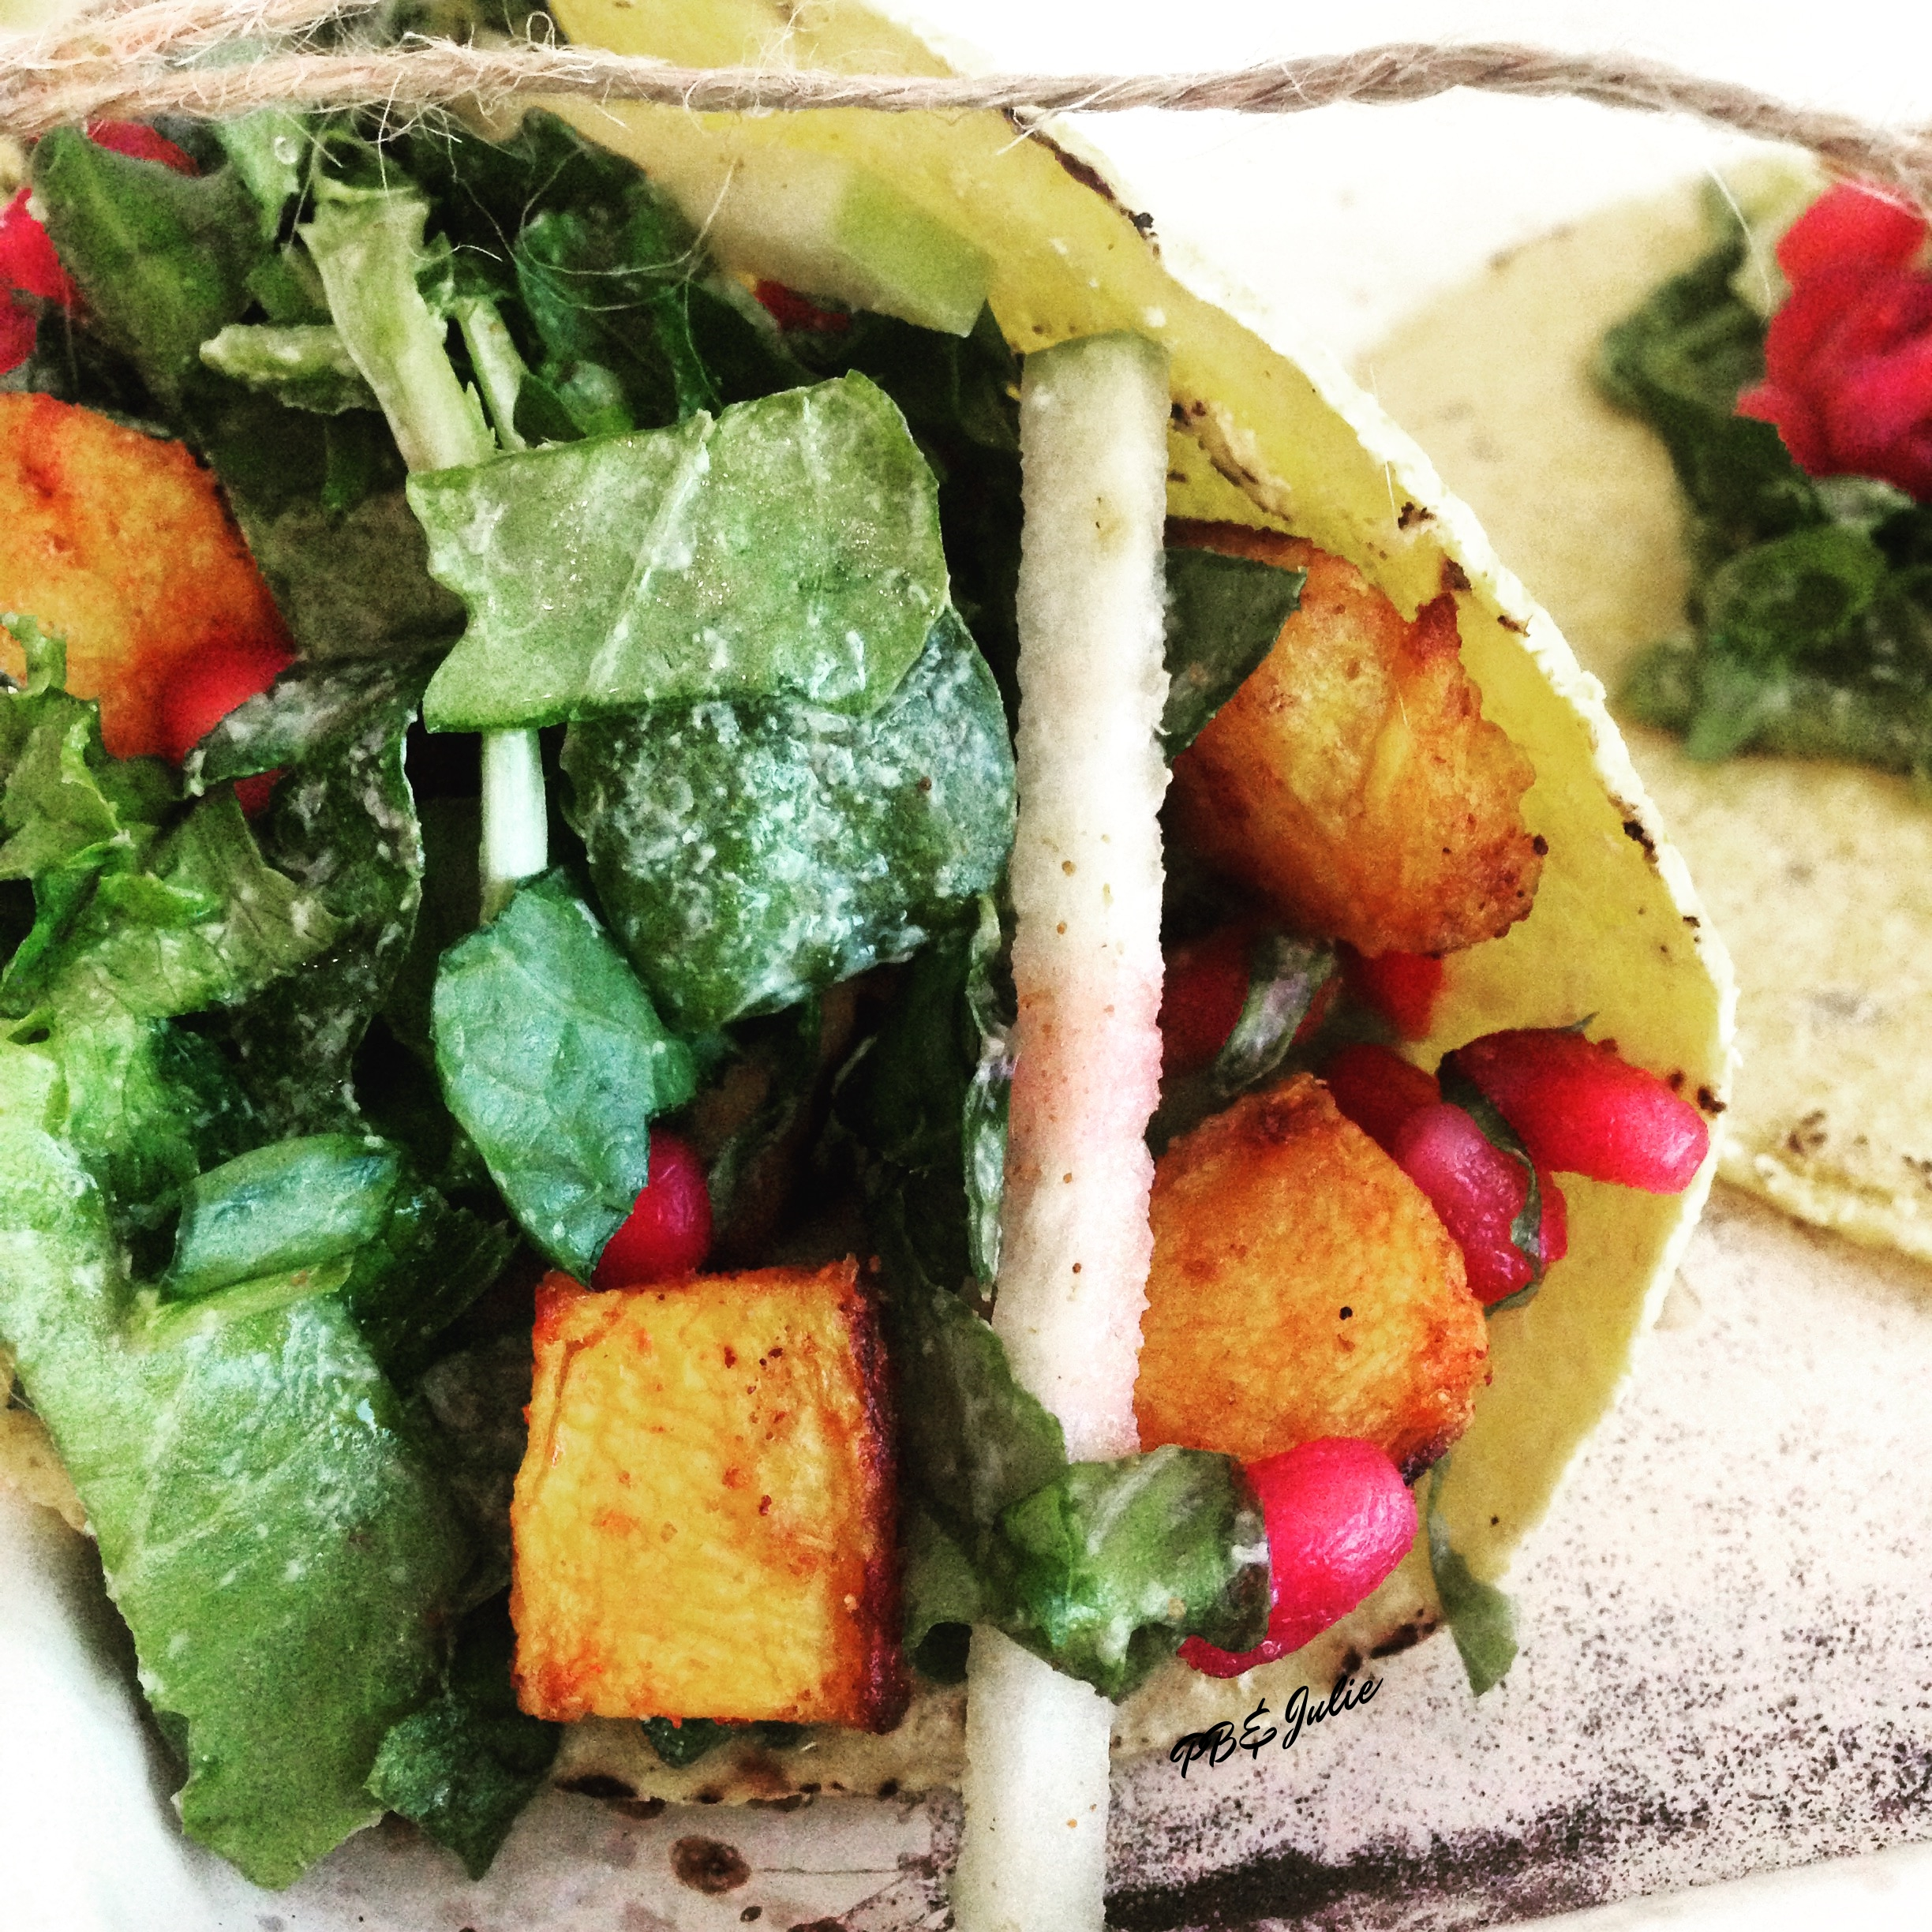 Spice up your next Taco Tuesday with these smokey, sweet vegan butternut squash and tahini kale slaw tacos with pomegranate avocado smash.